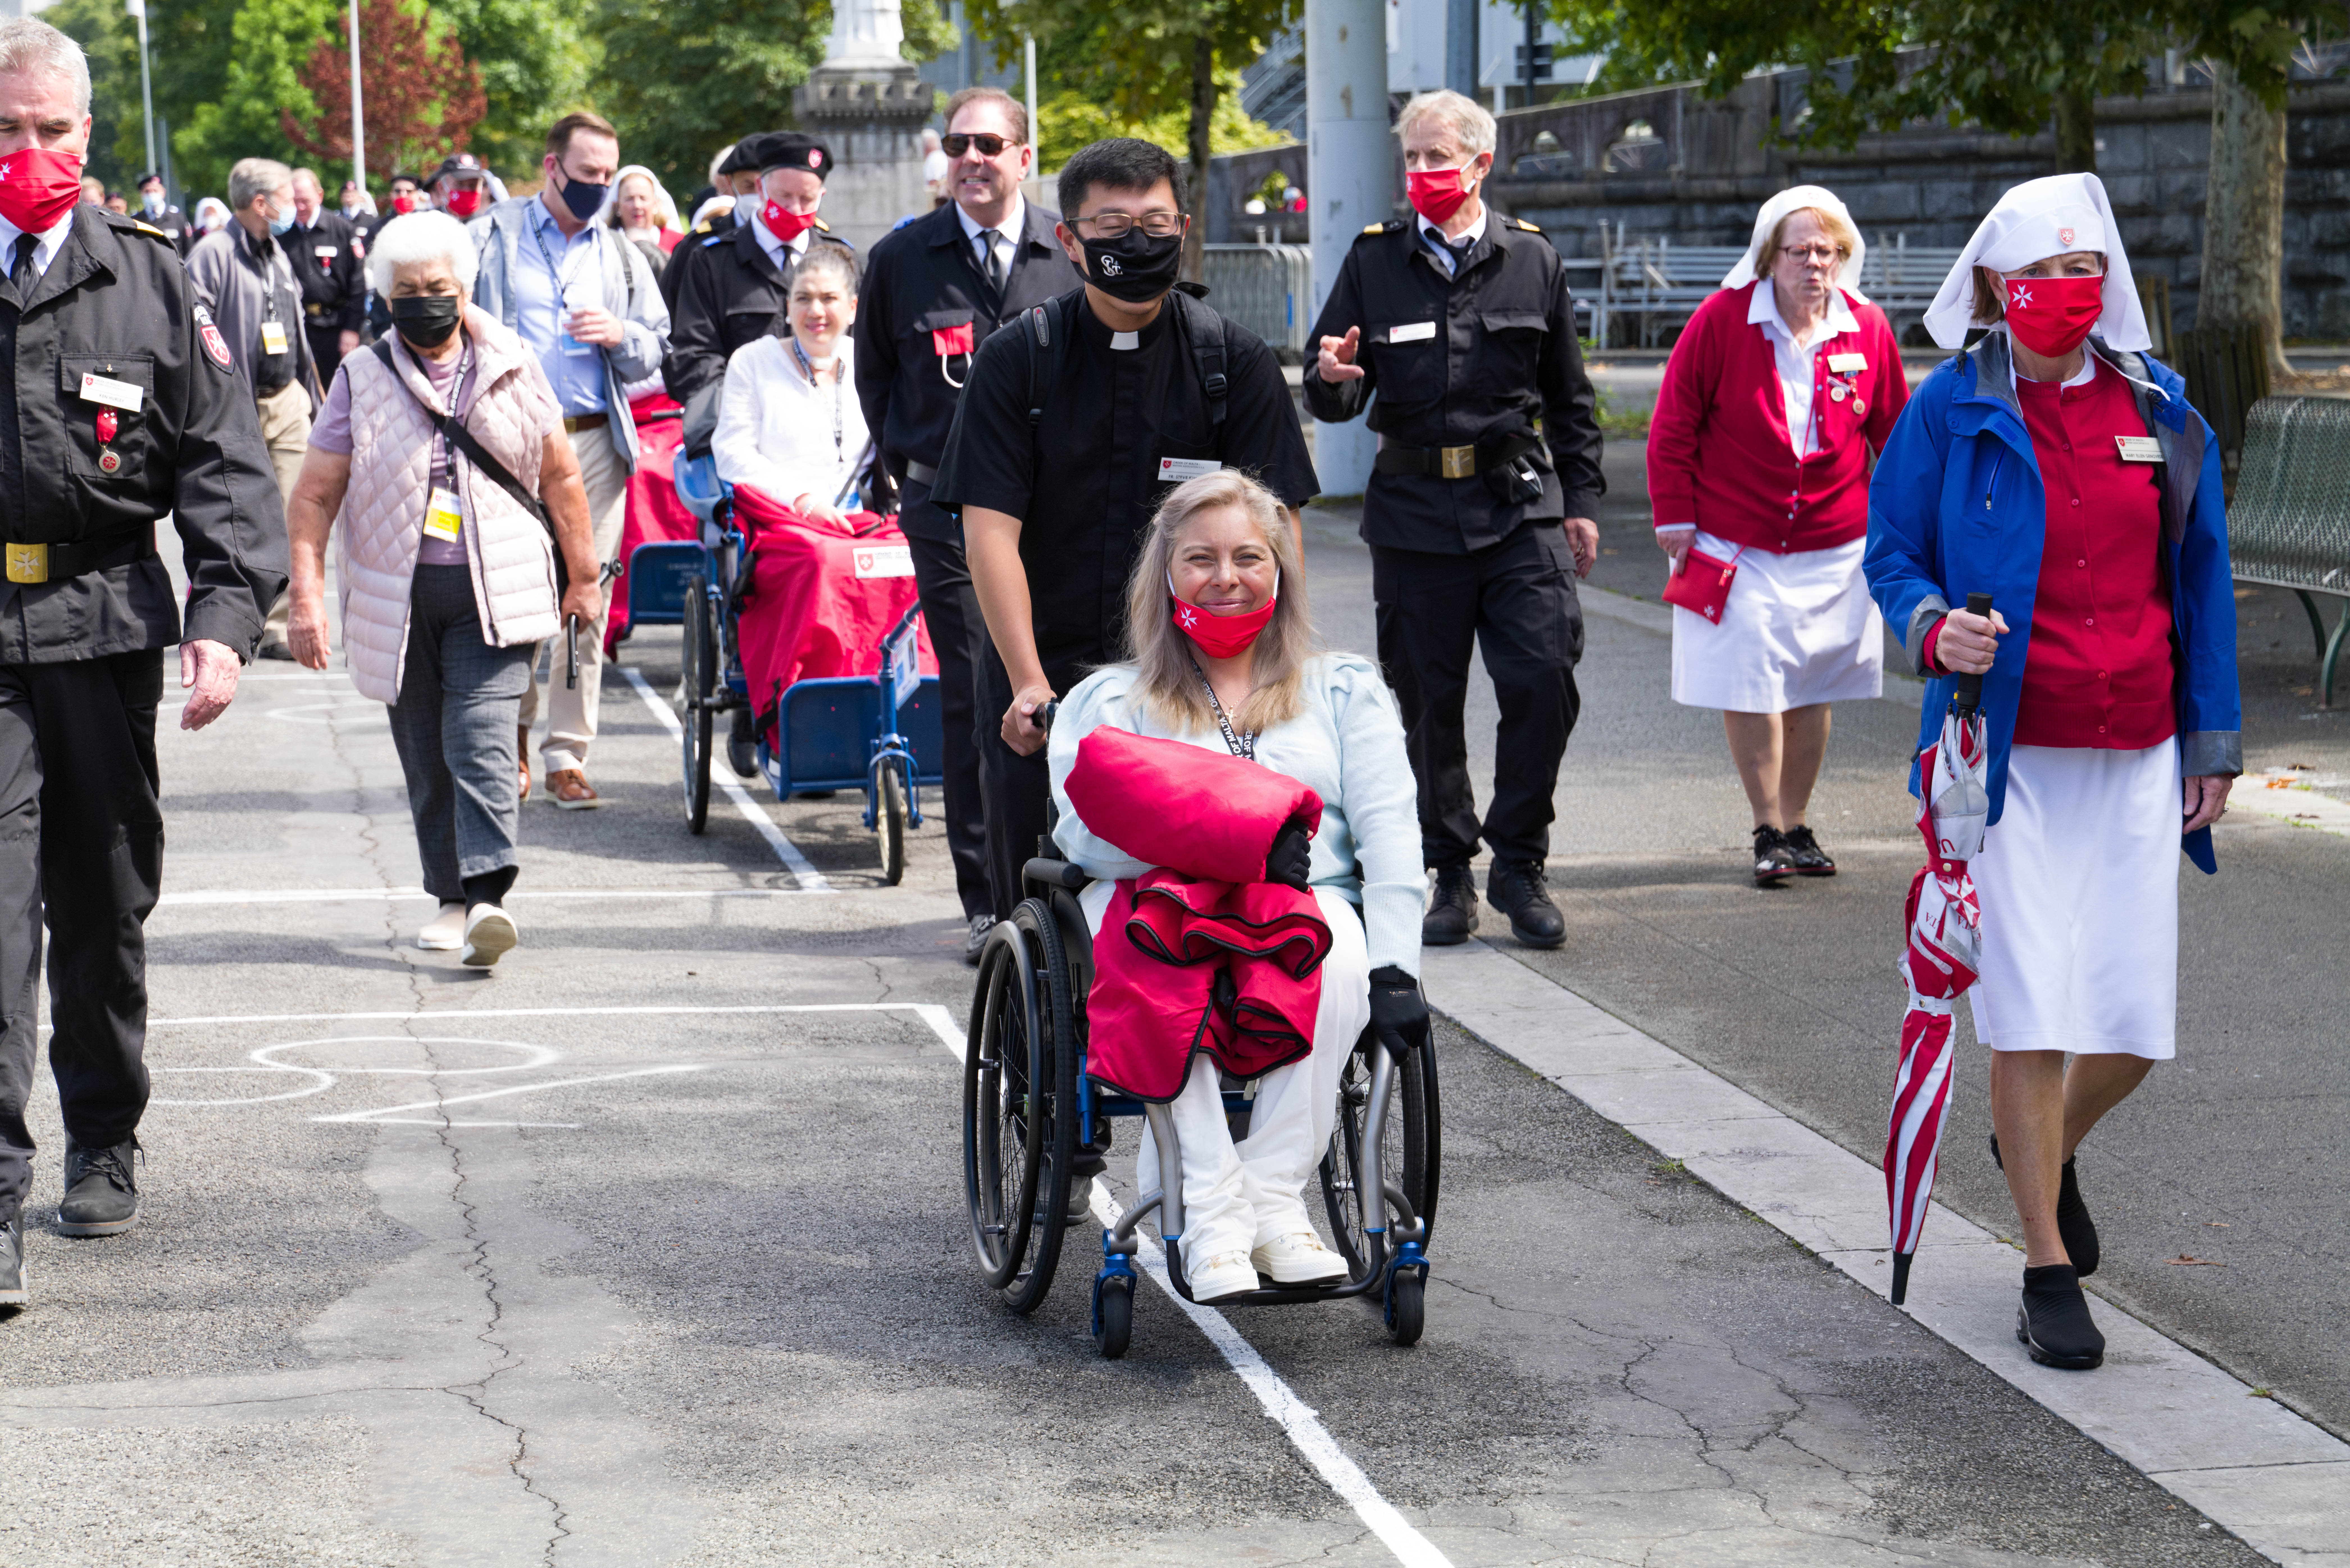 A malade makes her way Our Lady of Lourdes Shrine and Grotto accompanied by her family and members of the Order of Malta.